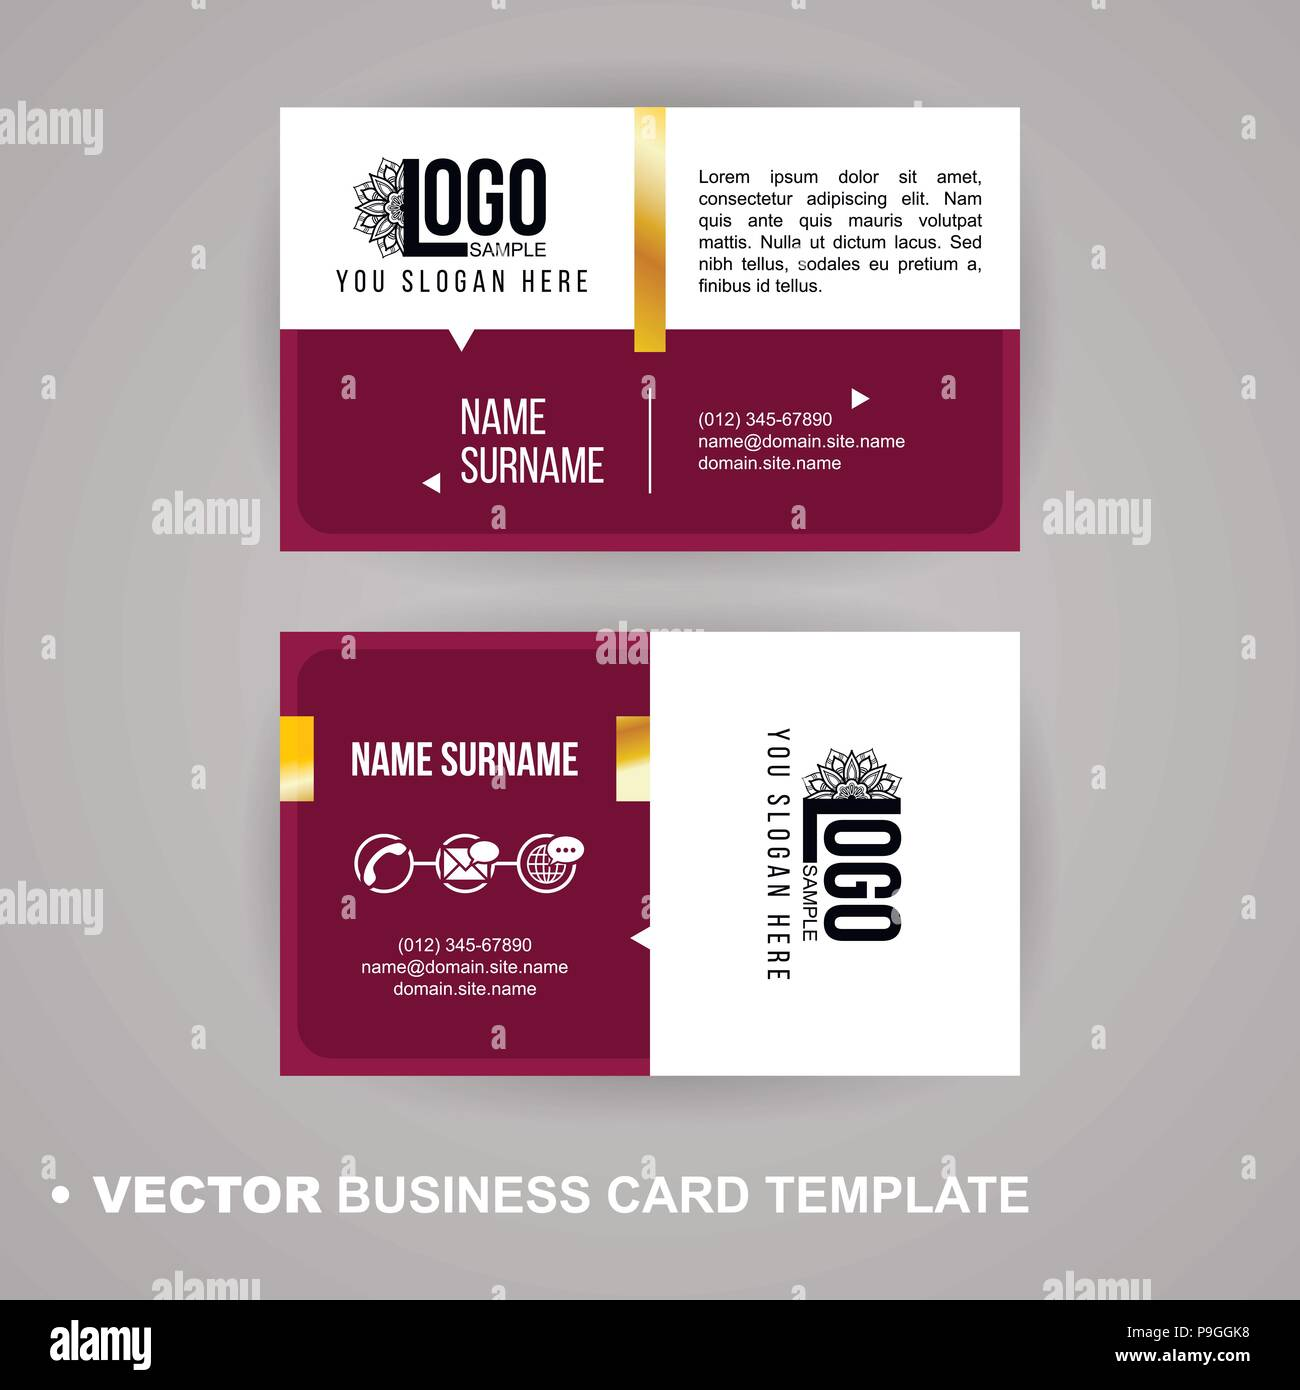 Vecrot business card template. Modern abstract luxury style for ...